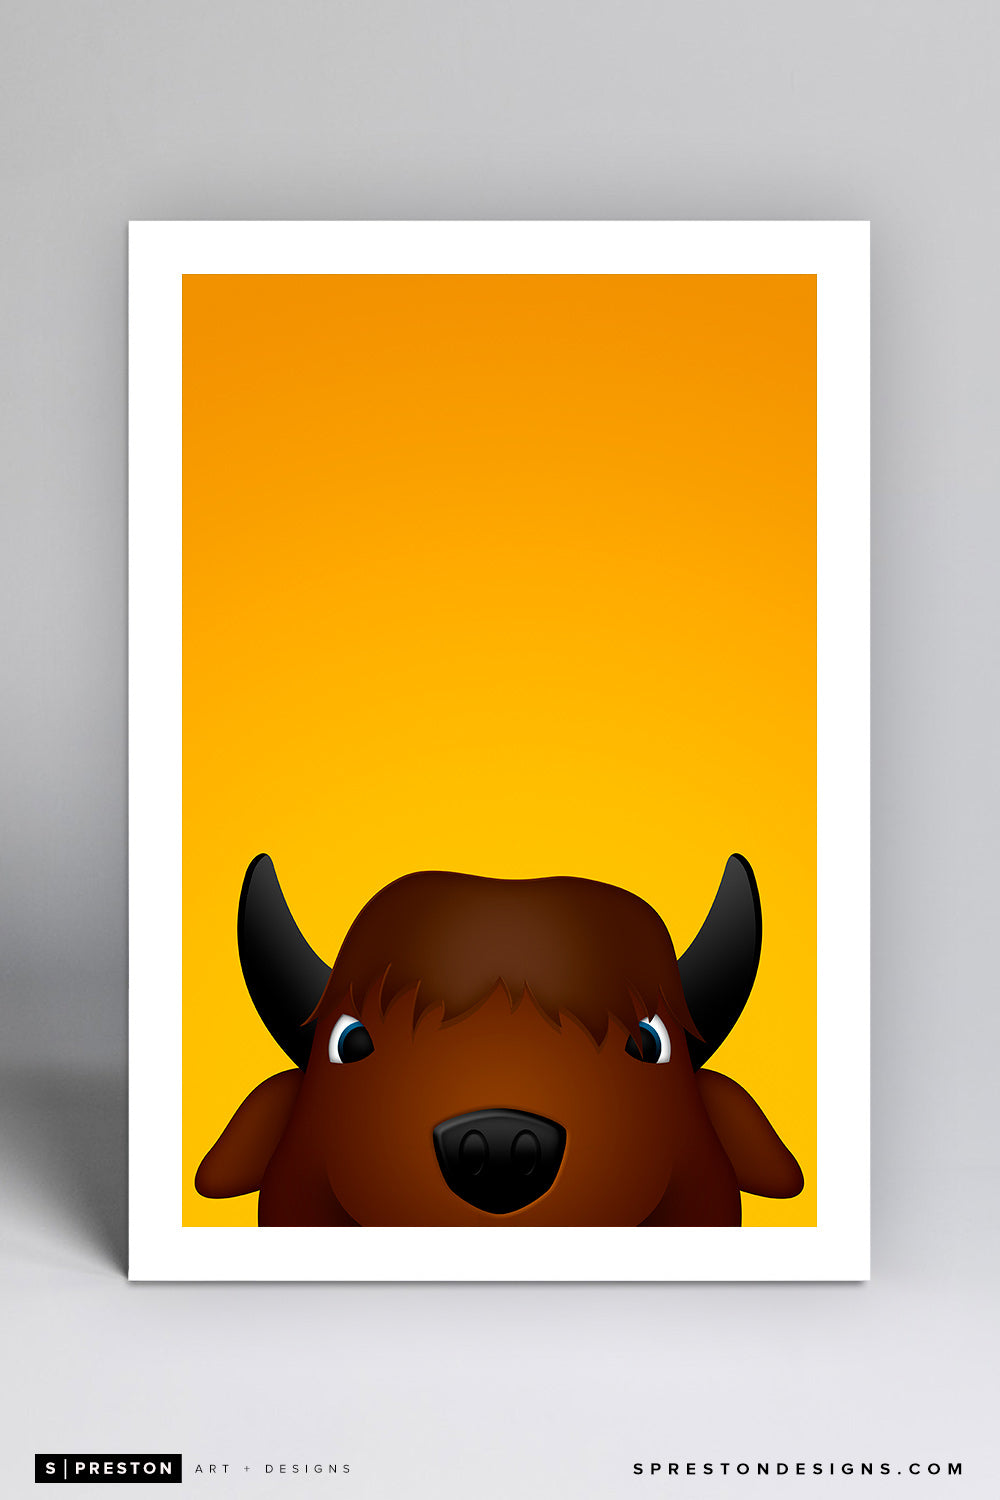 Minimalist Thundar - North Dakota State Art Print - North Dakota State University - S. Preston Art + Designs